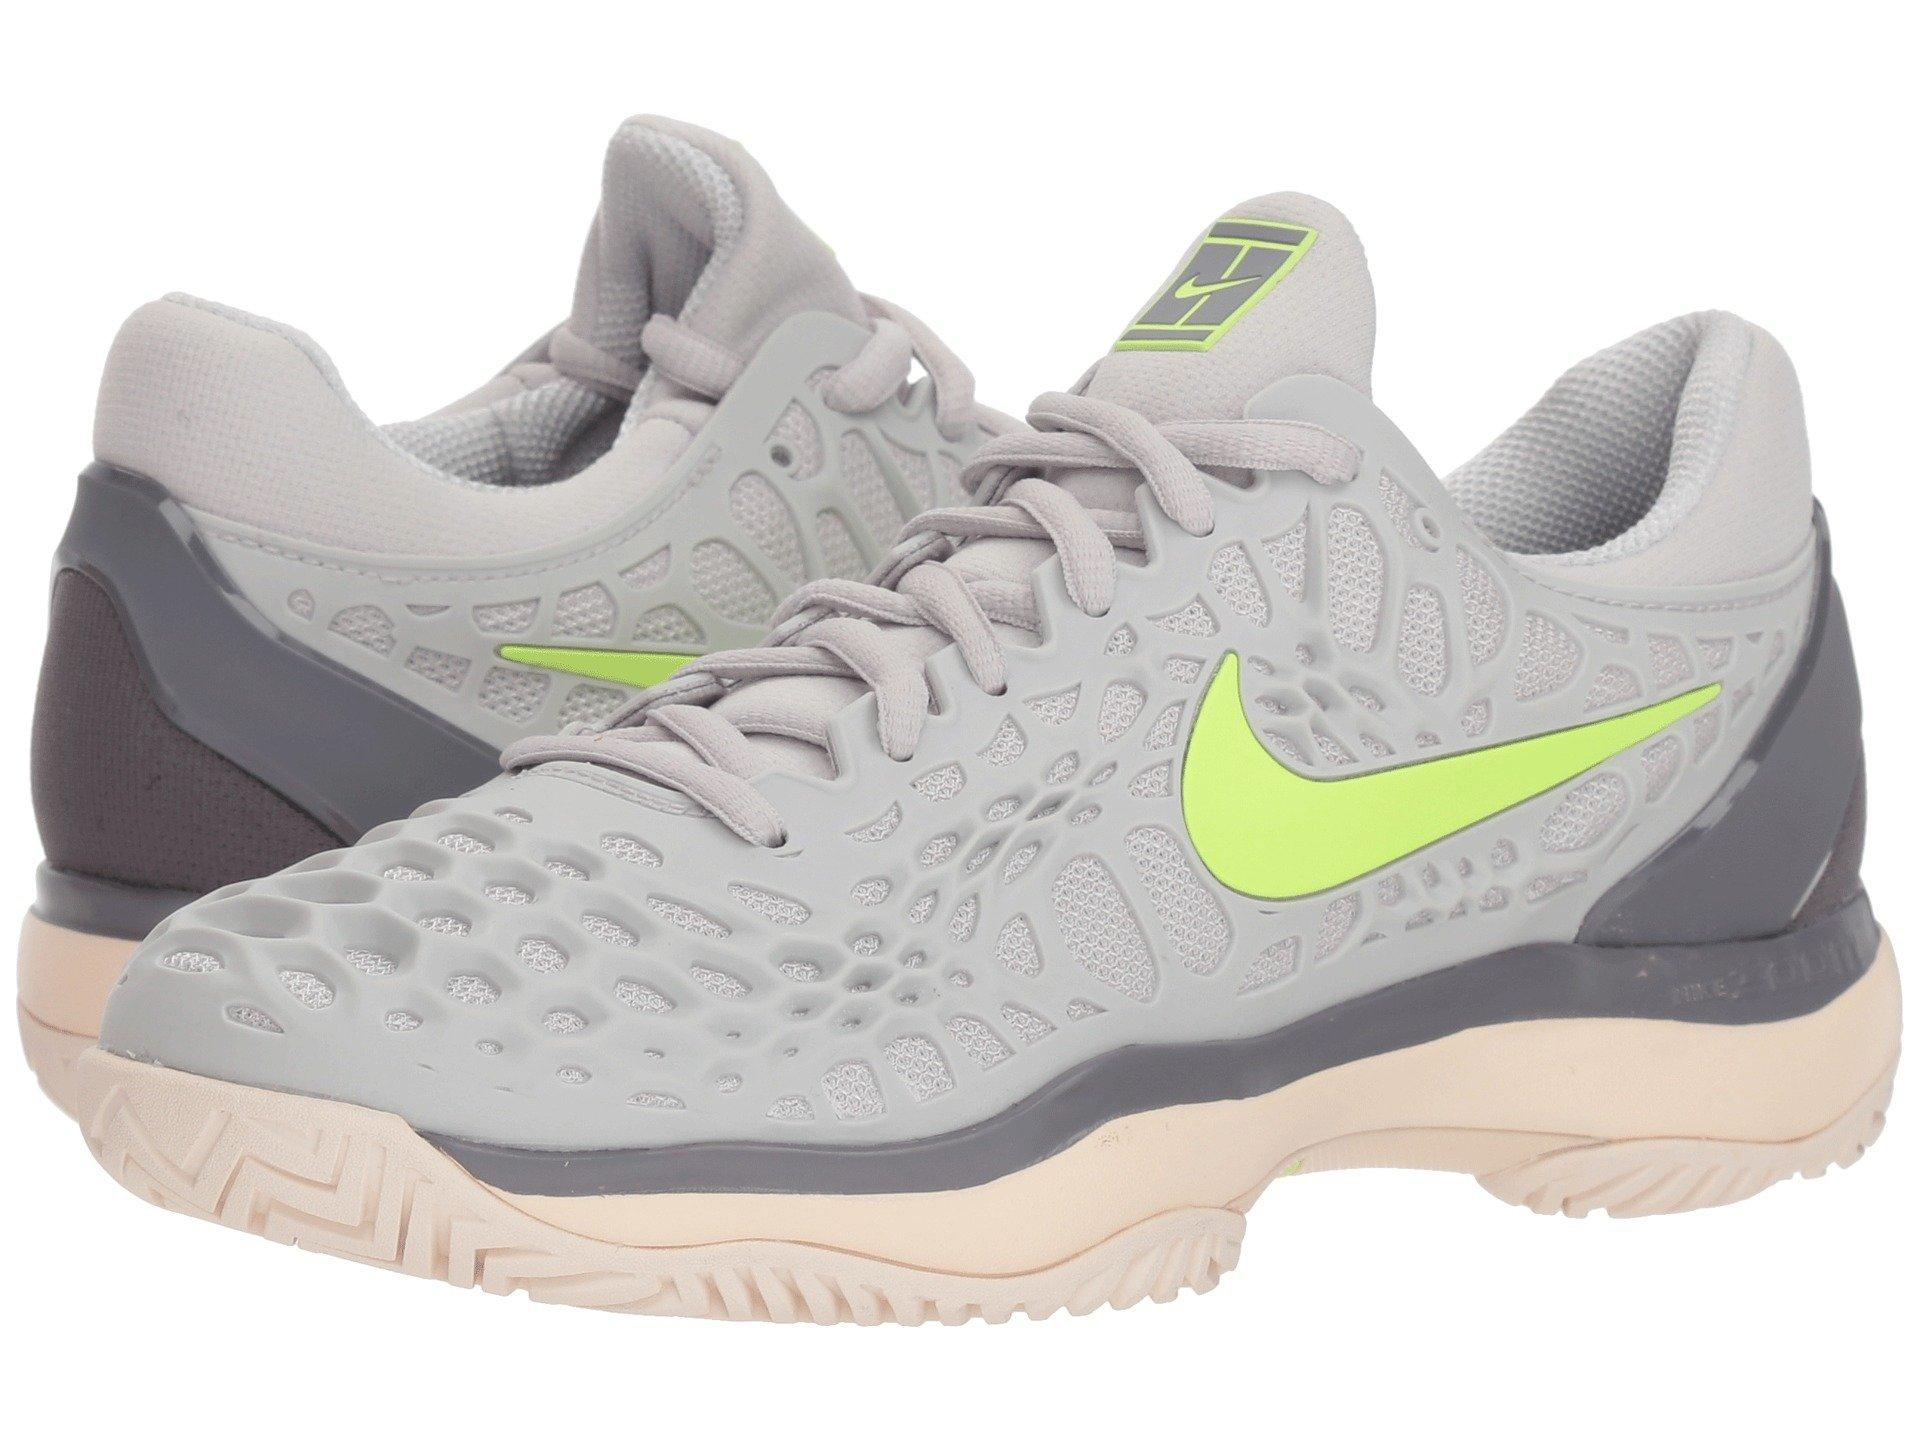 d076be60f9f9 Lyst - Nike Zoom Cage 3 Hc in Gray